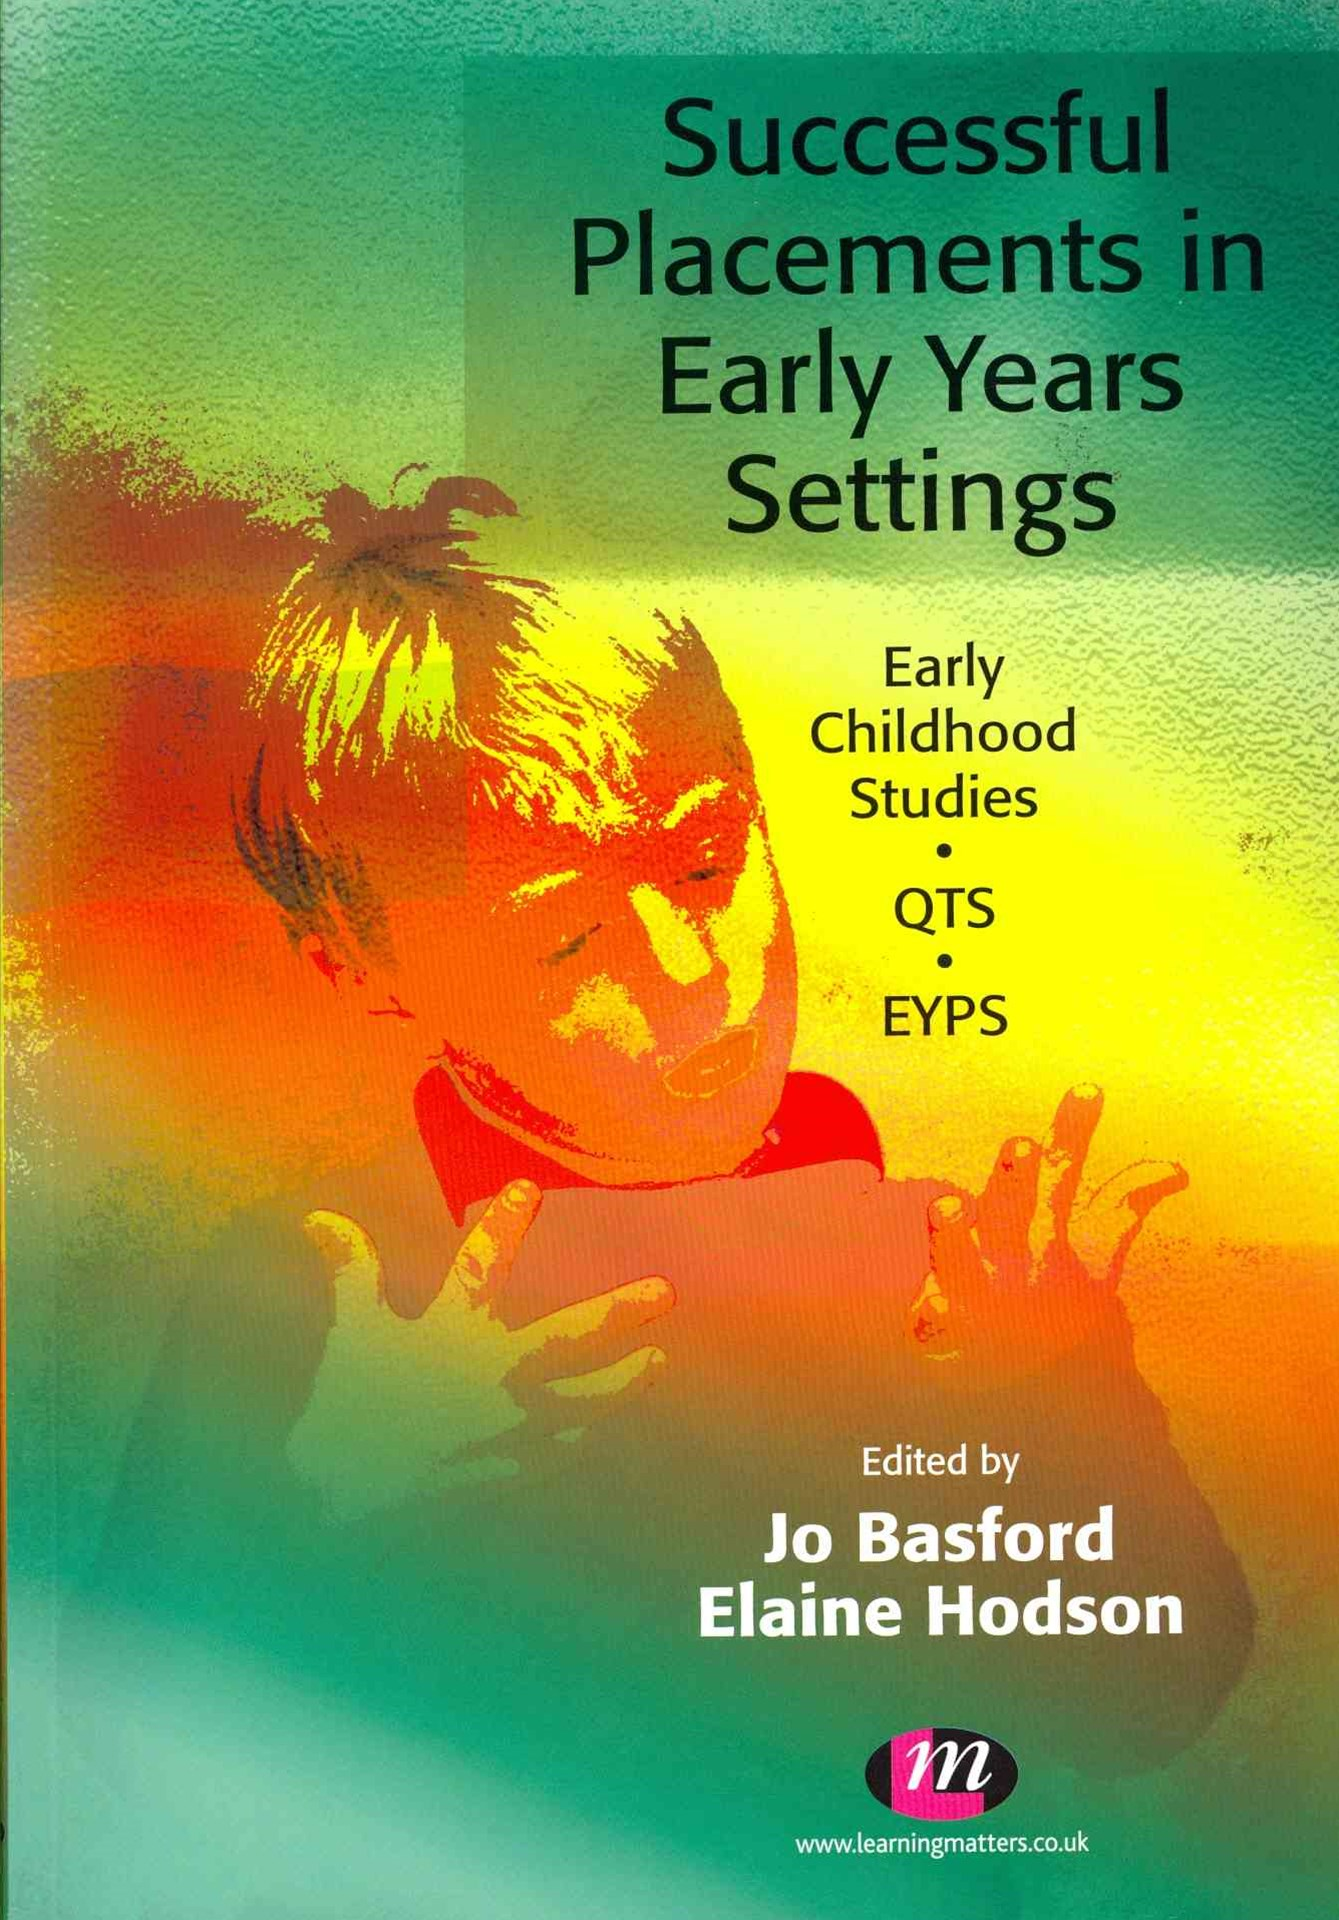 Successful Placements in Early Years Settings